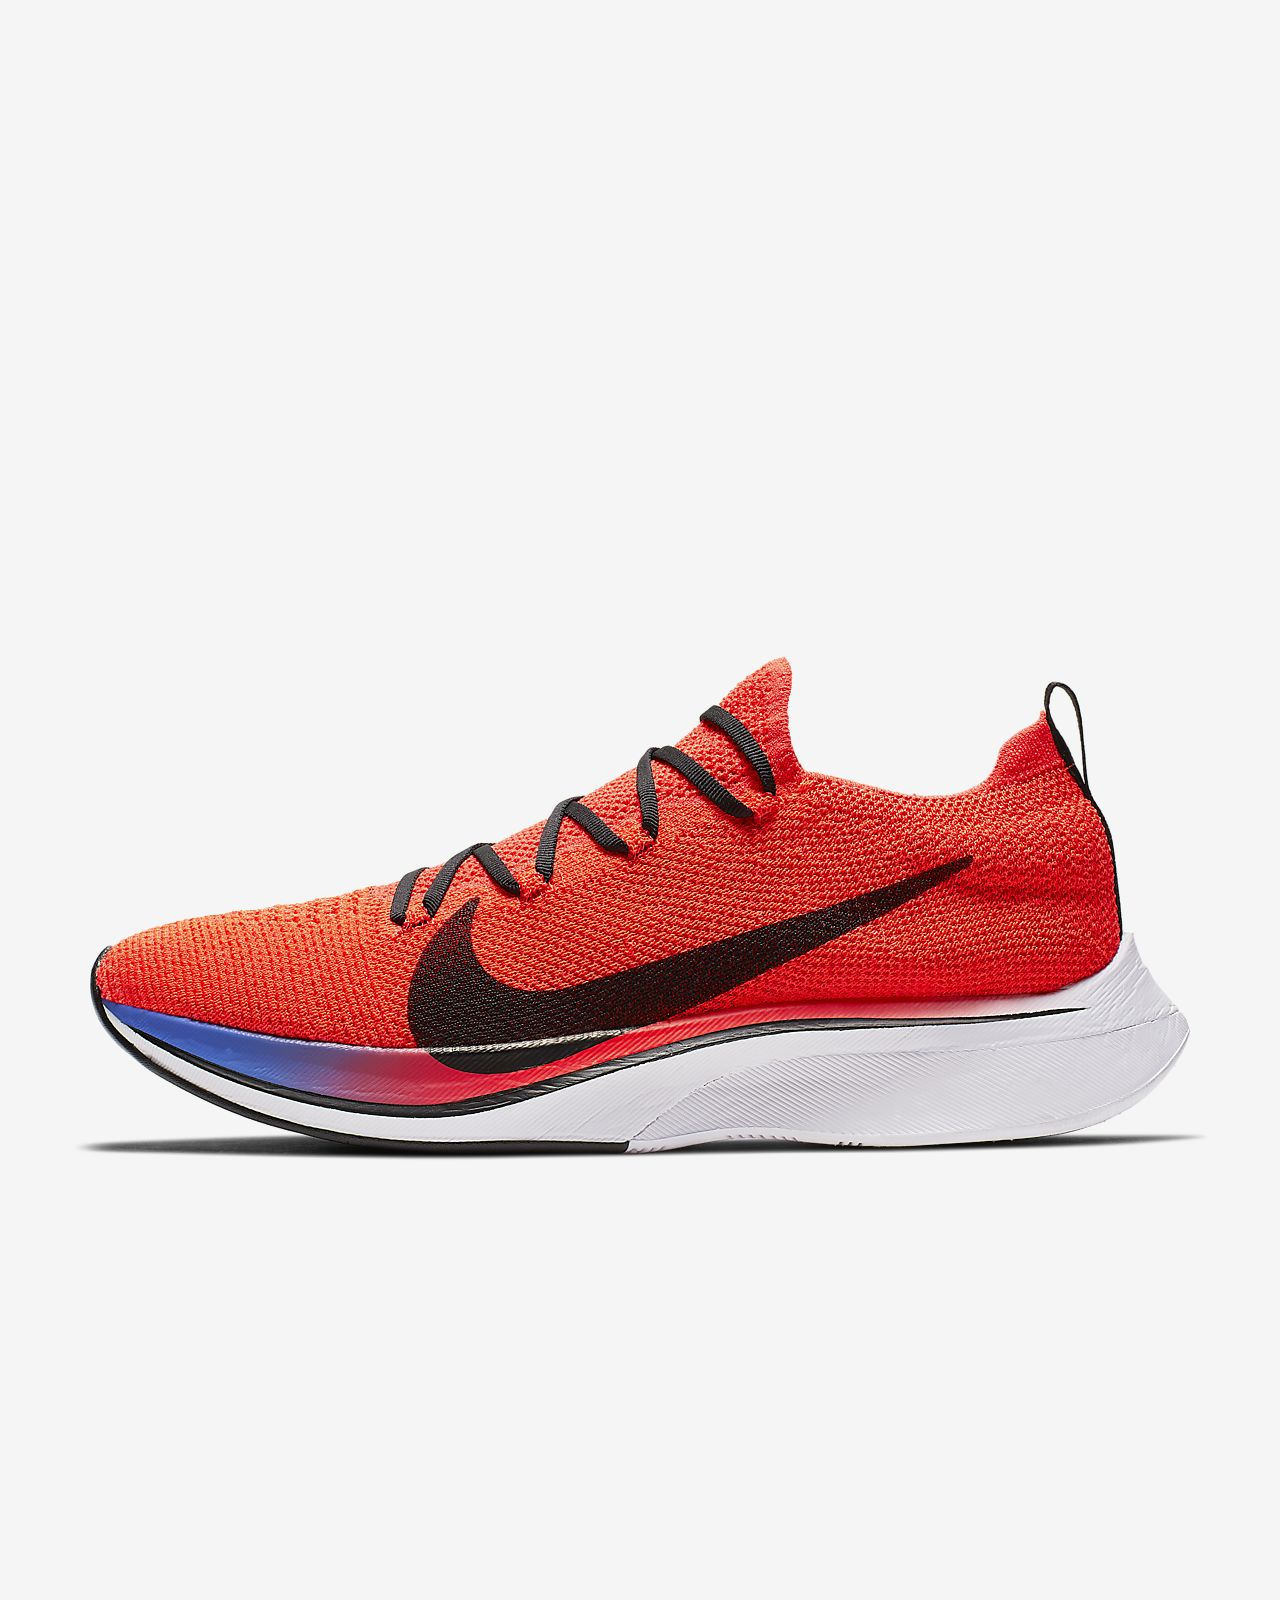 NIKE ZOOMX VAPORFLY 4% FLYKNIT: RE LAUNCH MIT NEUEM COLORWAY